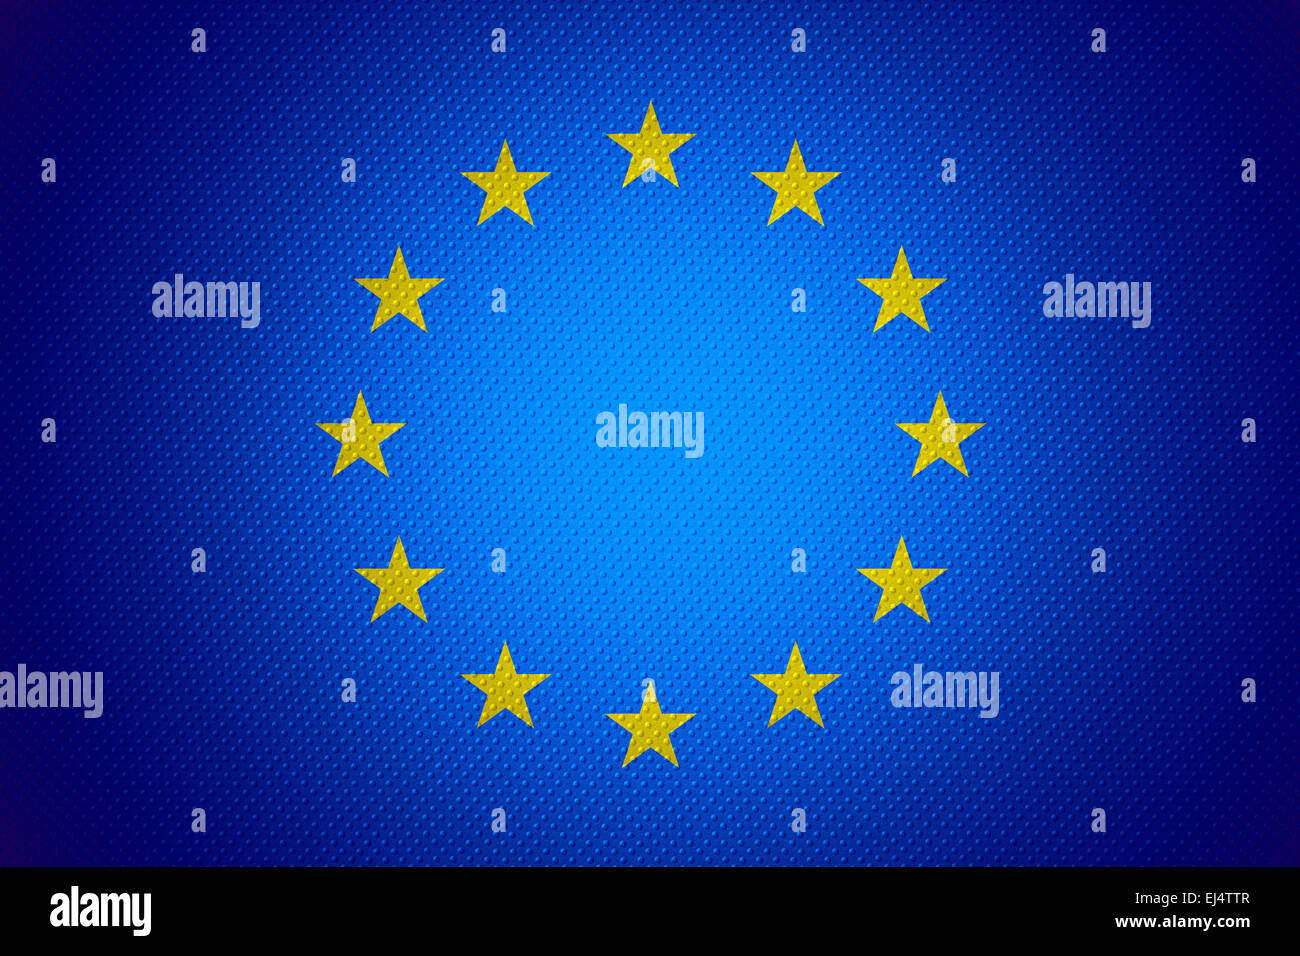 European Union flag or banner on abstract texture - Stock Image